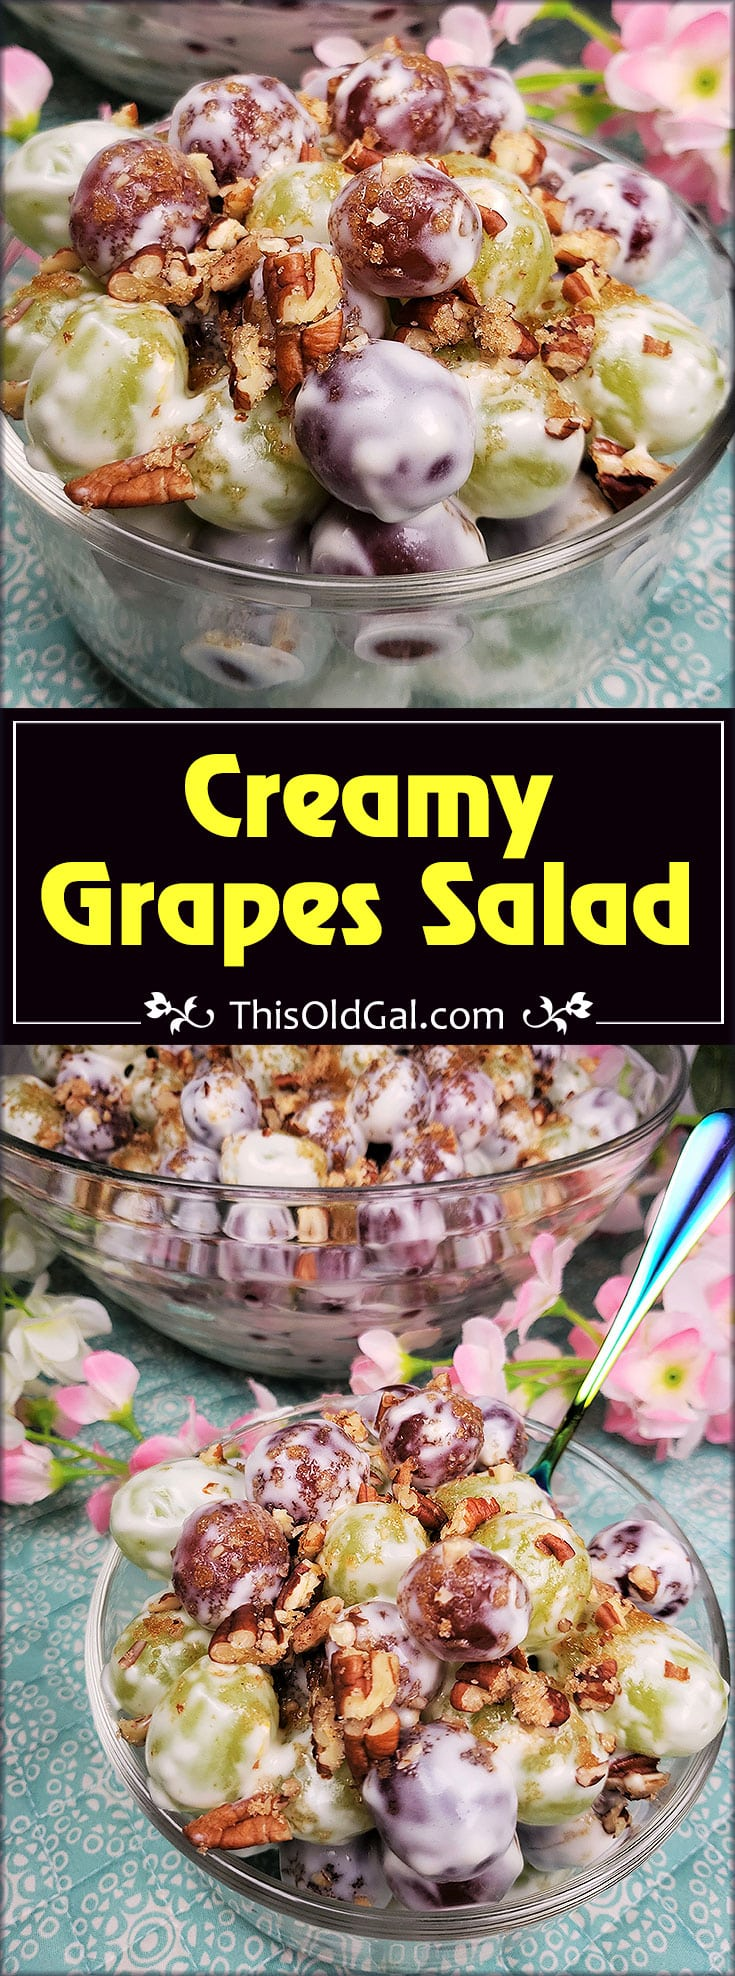 Creamy Grapes Cheesecake Salad